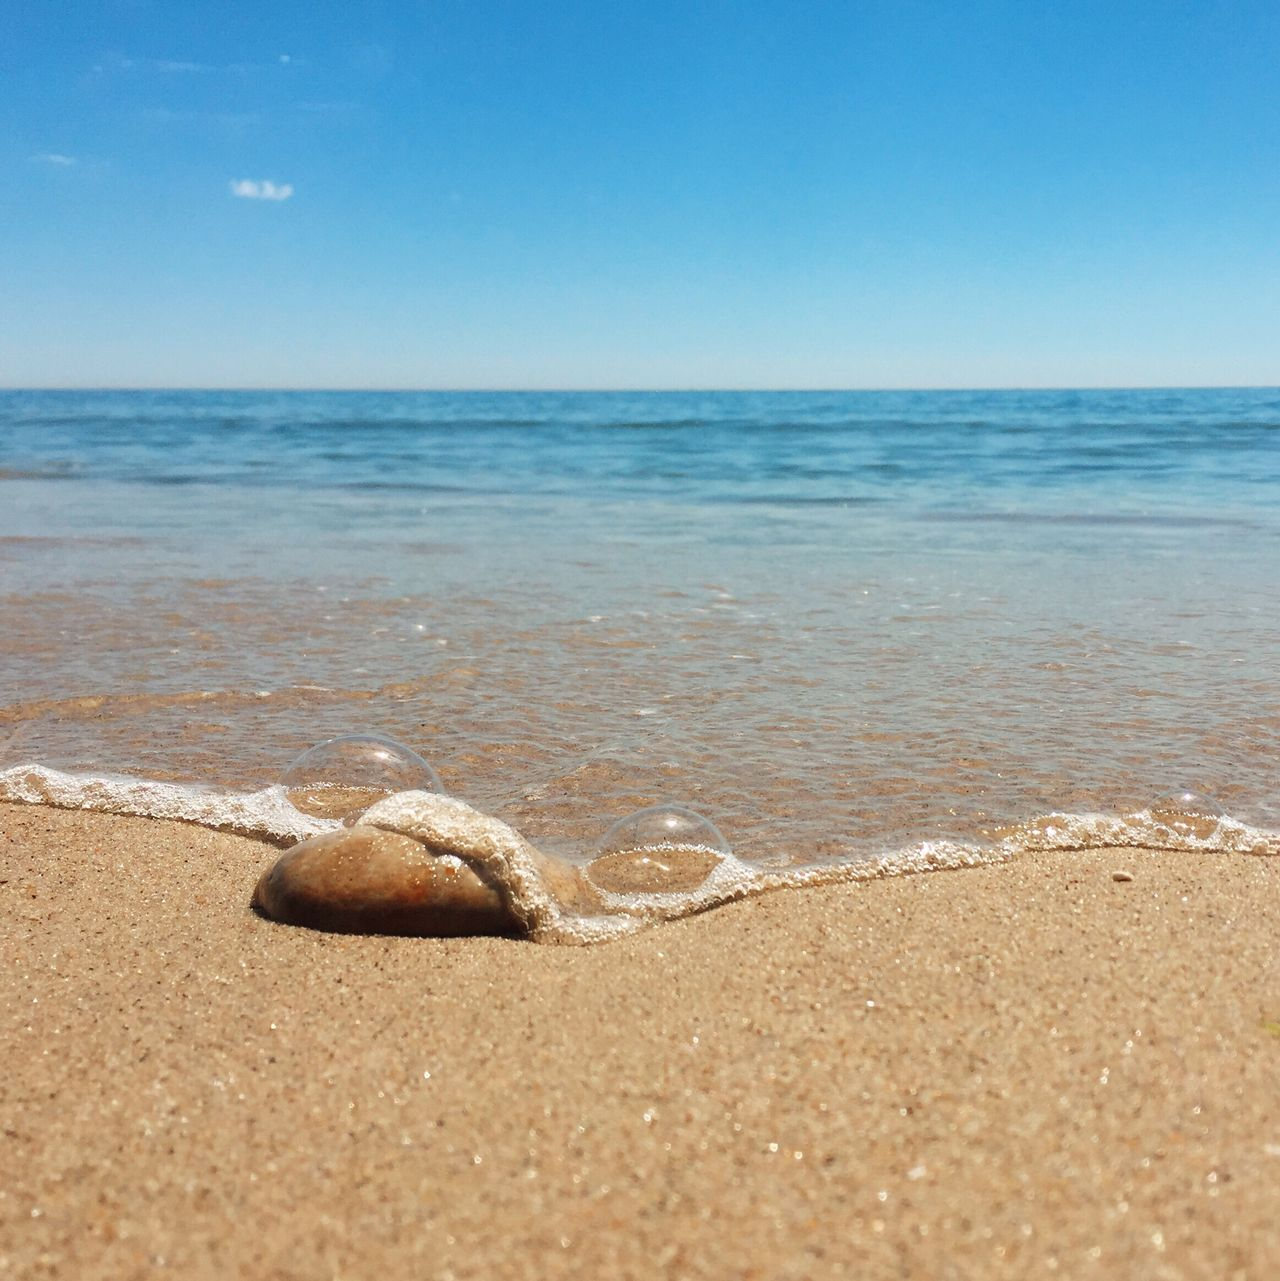 Sand Beach Sea Horizon Over Water Shore Water Tranquil Scene Tranquility Scenics Seascape Coastline Summer Nature Calm Blue Travel Destinations Sky Surface Level Beauty In Nature Vacations